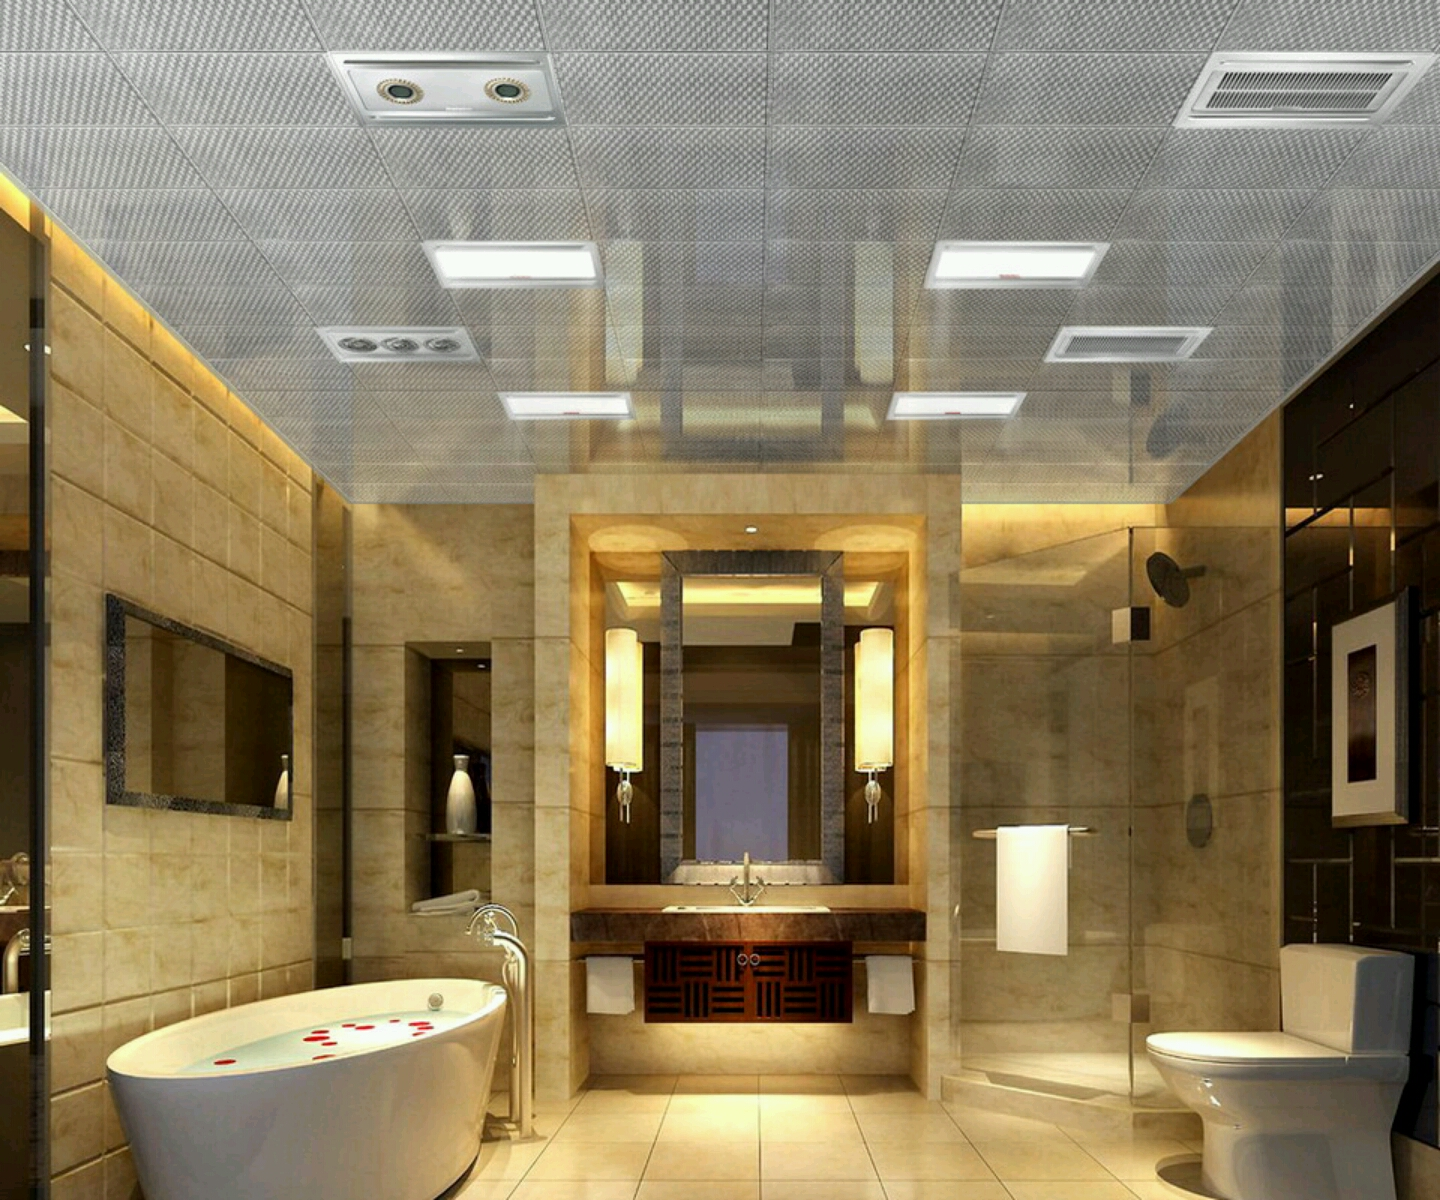 New home designs latest luxury bathrooms designs ideas for New bathroom design ideas